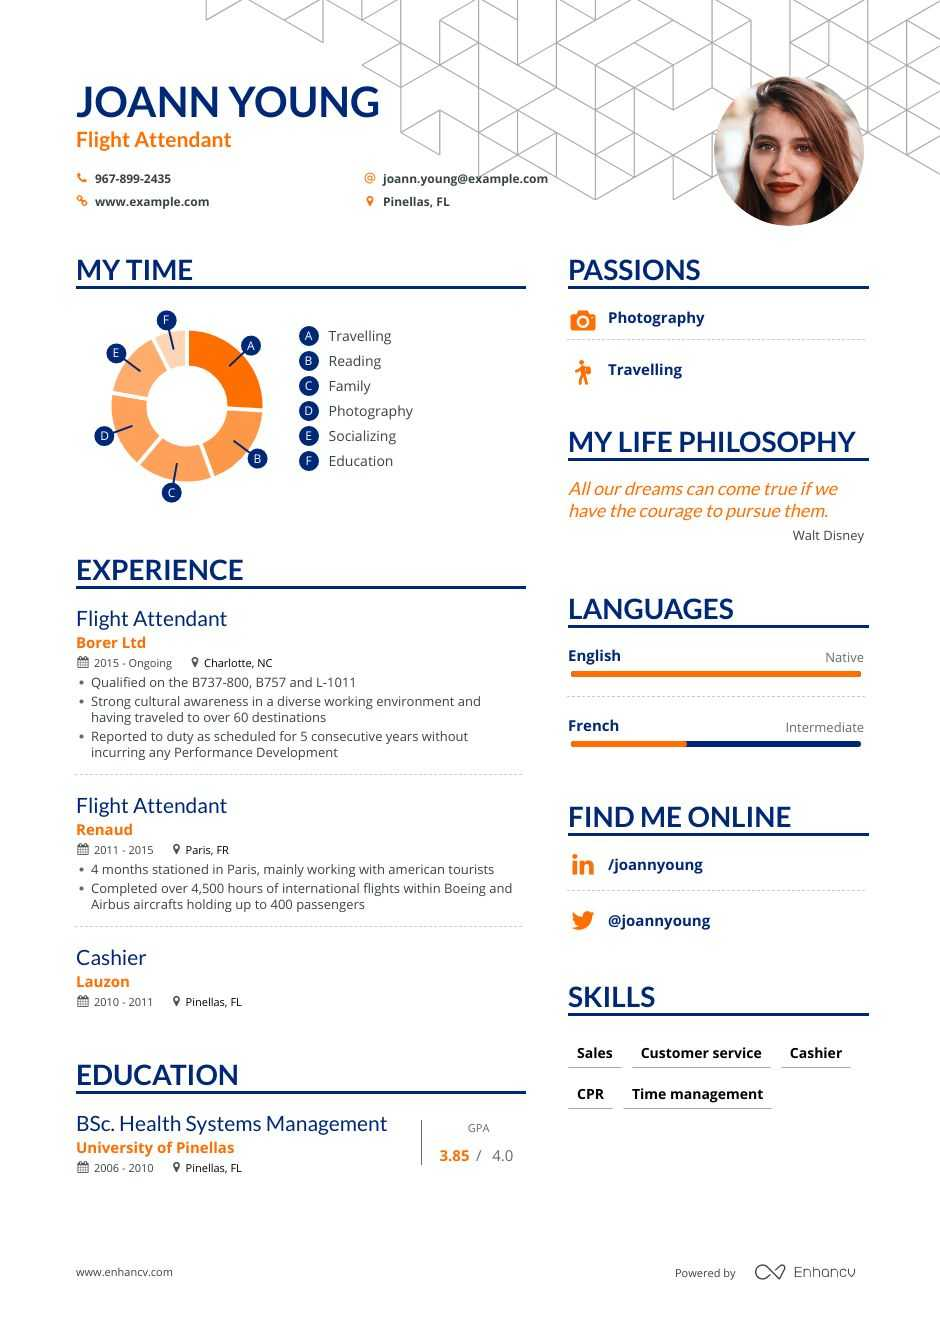 Cover Letter For Flight Attendant Position from enhancv.com